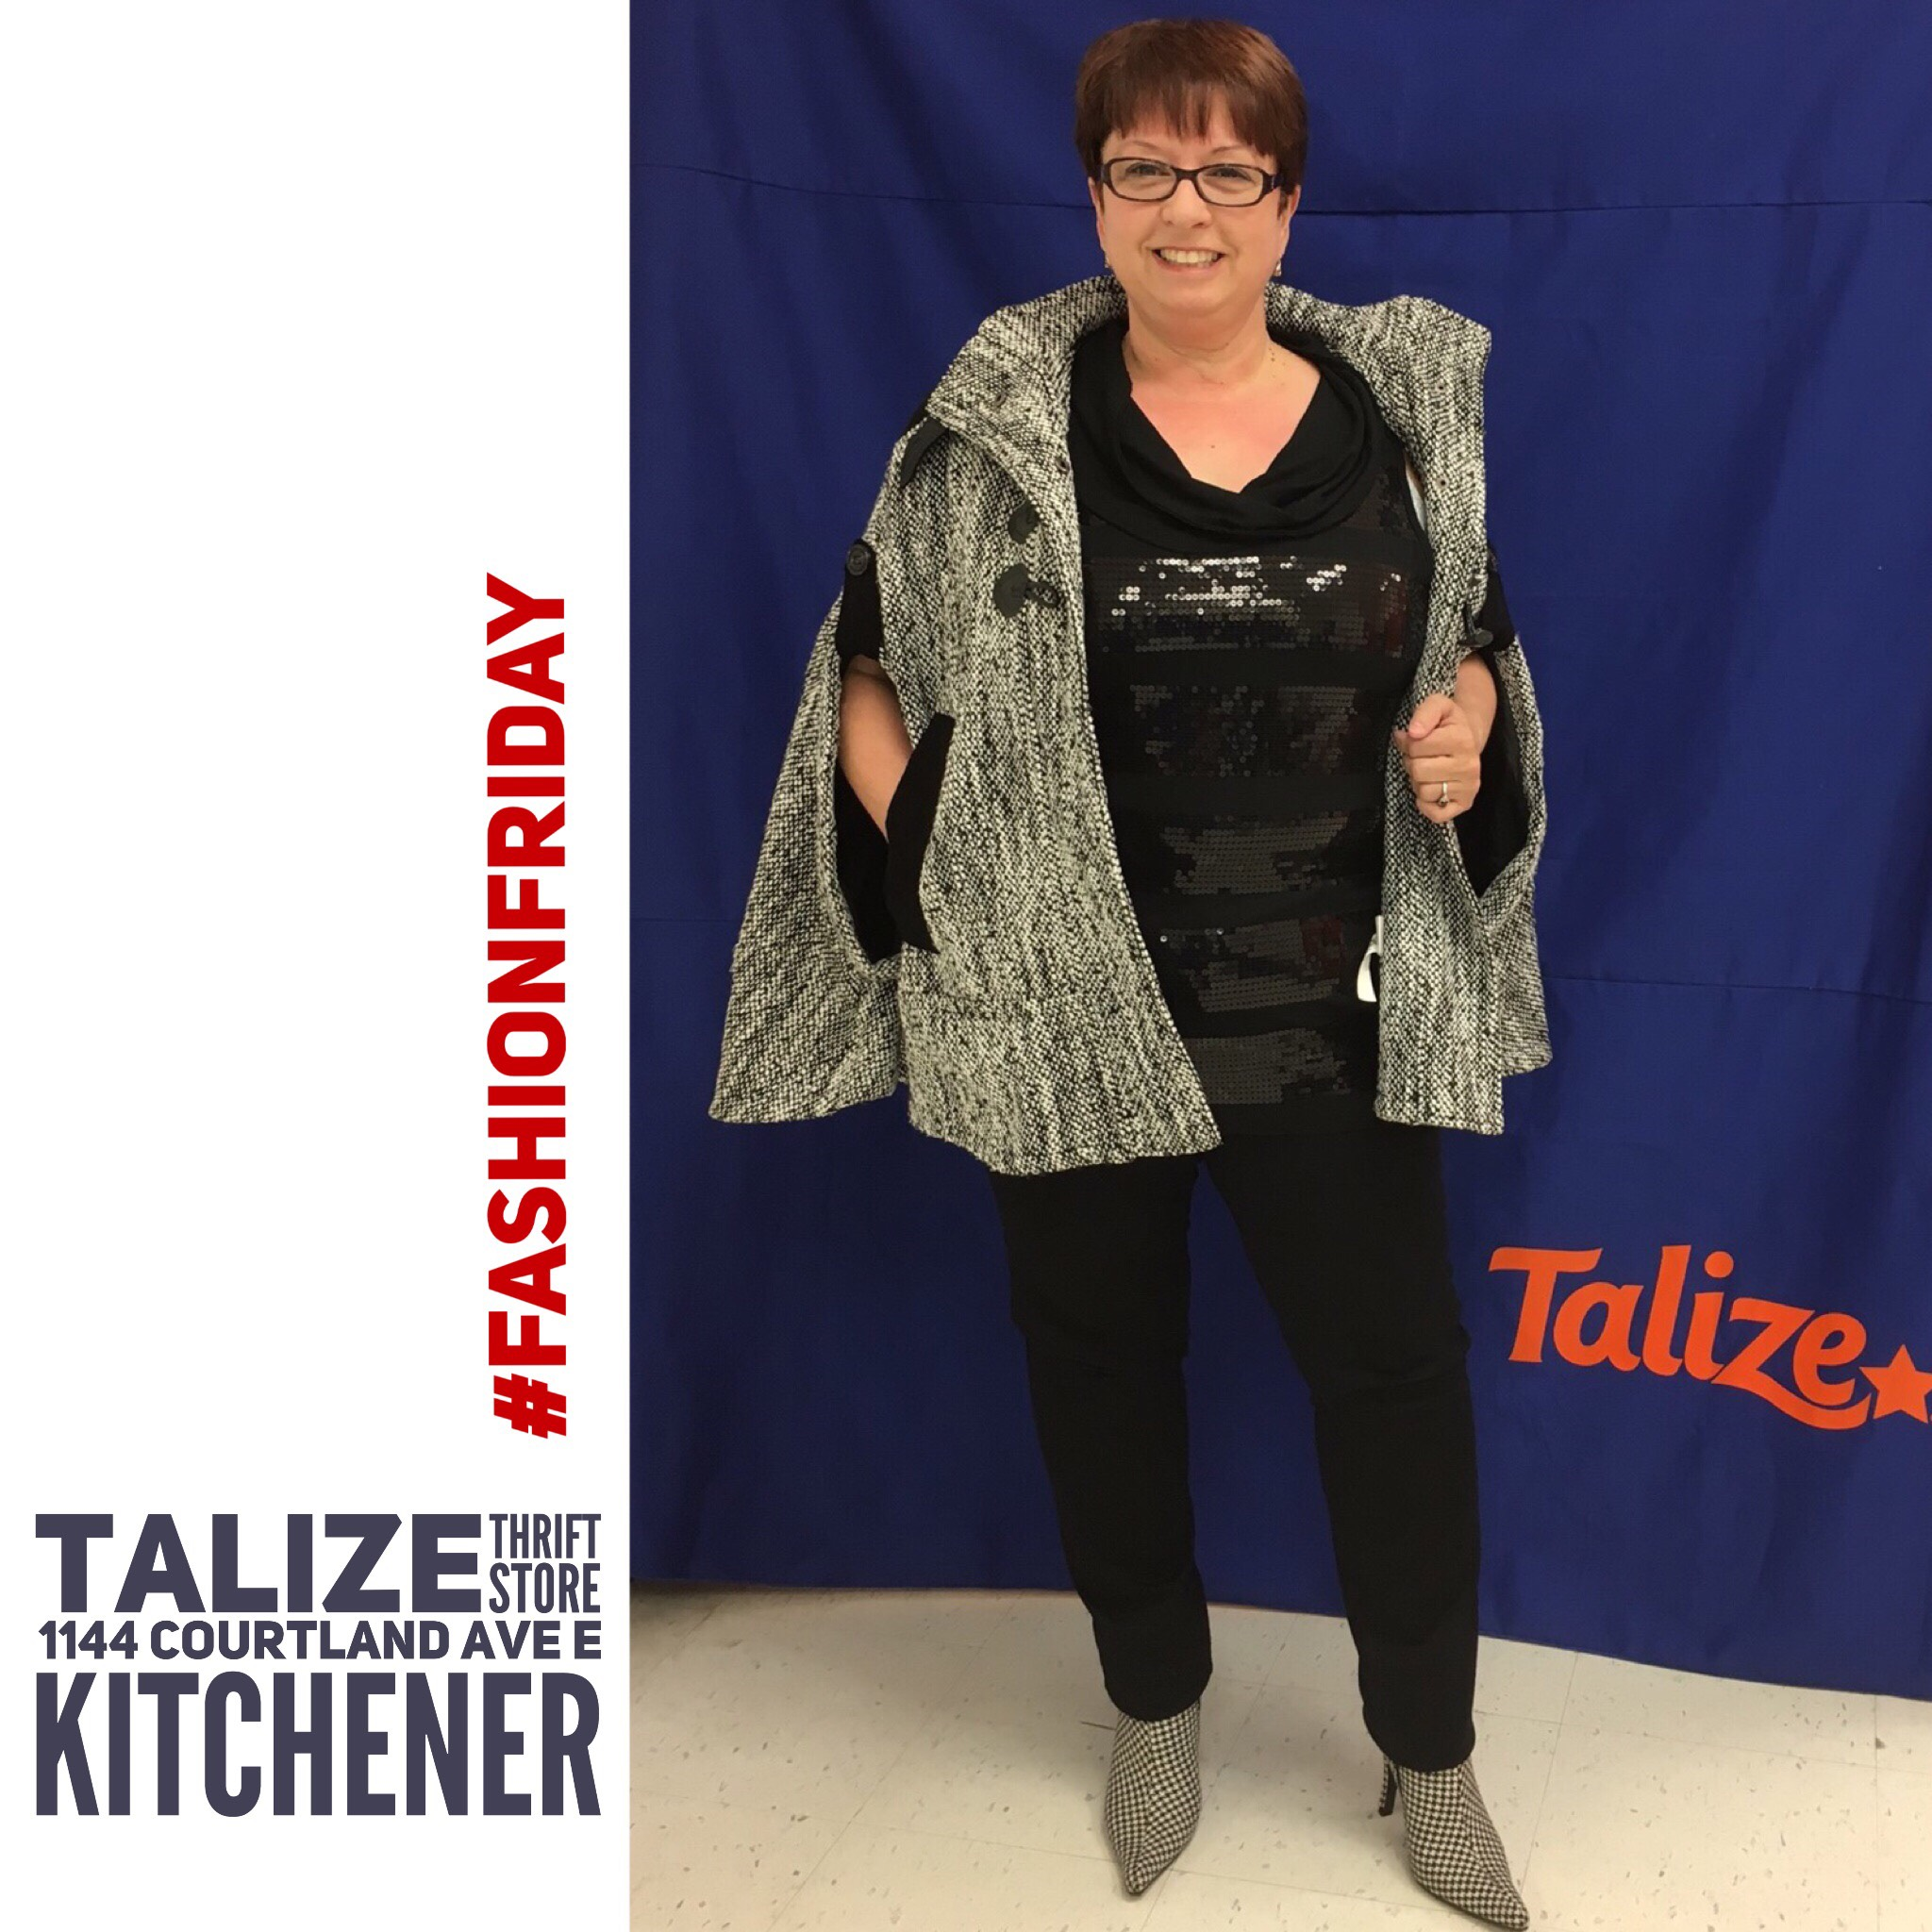 talizethrift Colour blend shoes to jacket, keep jacket at the top hip - Reitmans top / Costa Blanca jacket / George shoes  #fashionfriday  #talizekitchener  #talize  #thrift  #thriftstorefinds  #style  #fashion  #shoes